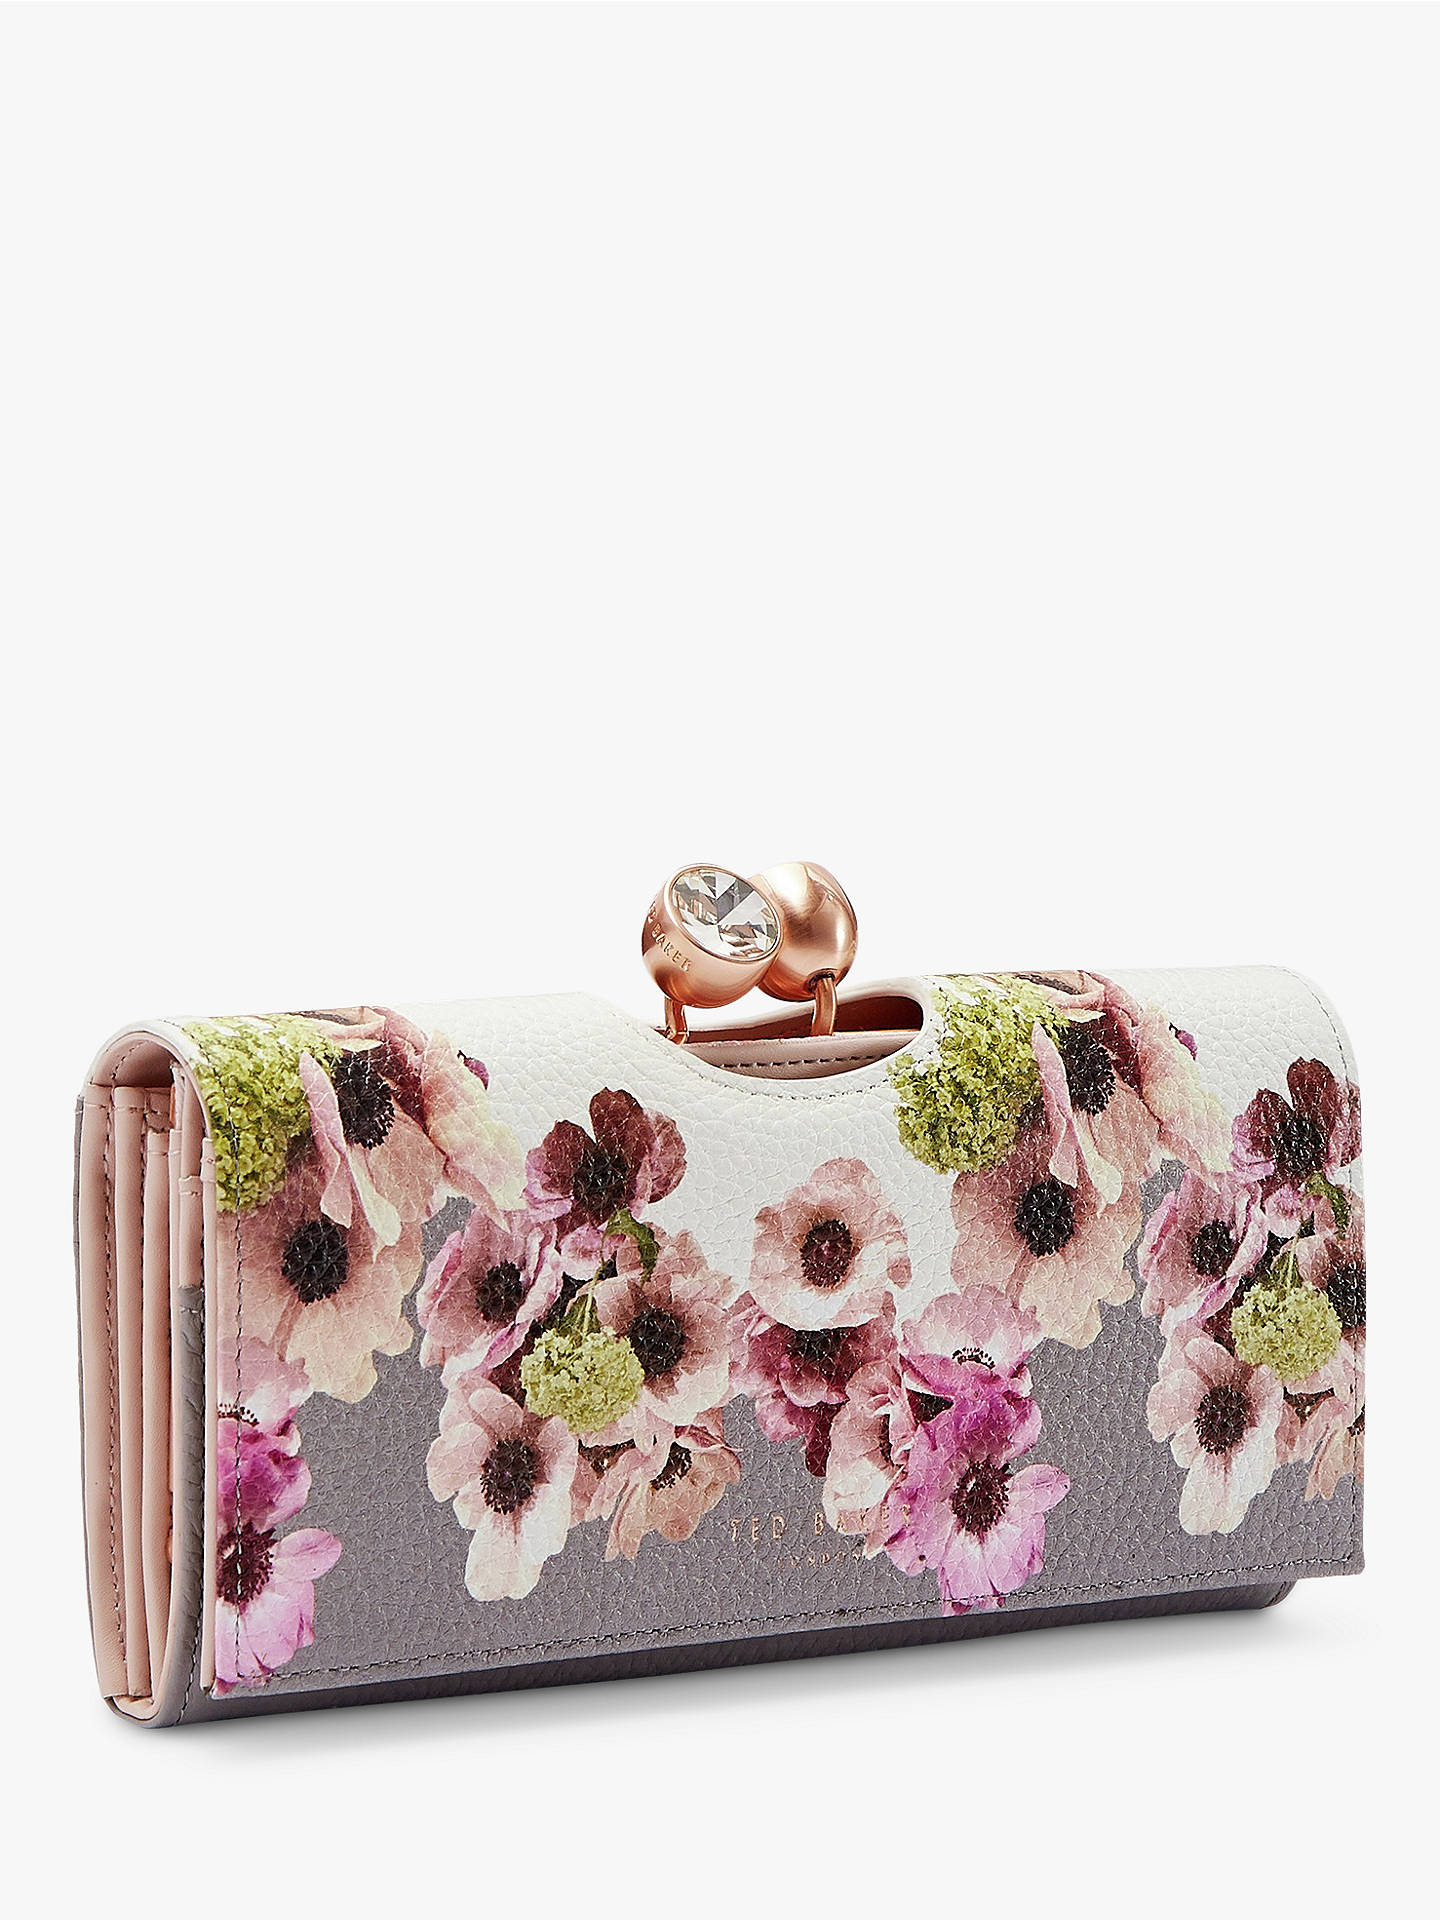 Ted Baker Adelphe Neapolitan Print Leather Matinee Purse, Multi/Ivory by Ted Baker